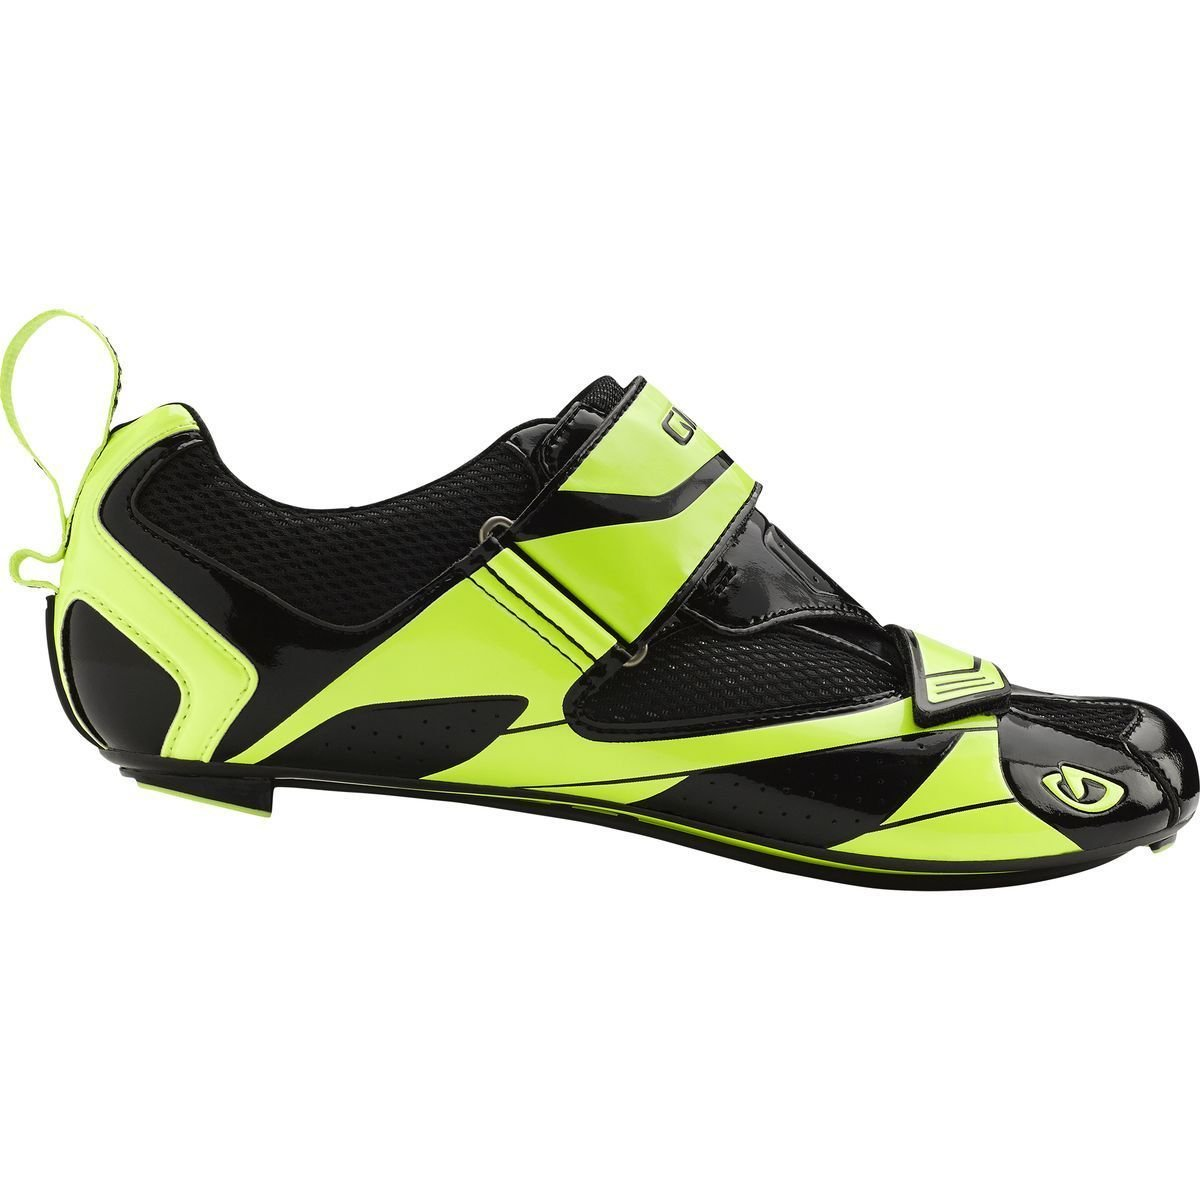 Giro GF20180 Mens Mele Tri Road Shoes, Blk/Hi Yel - 39 by Giro